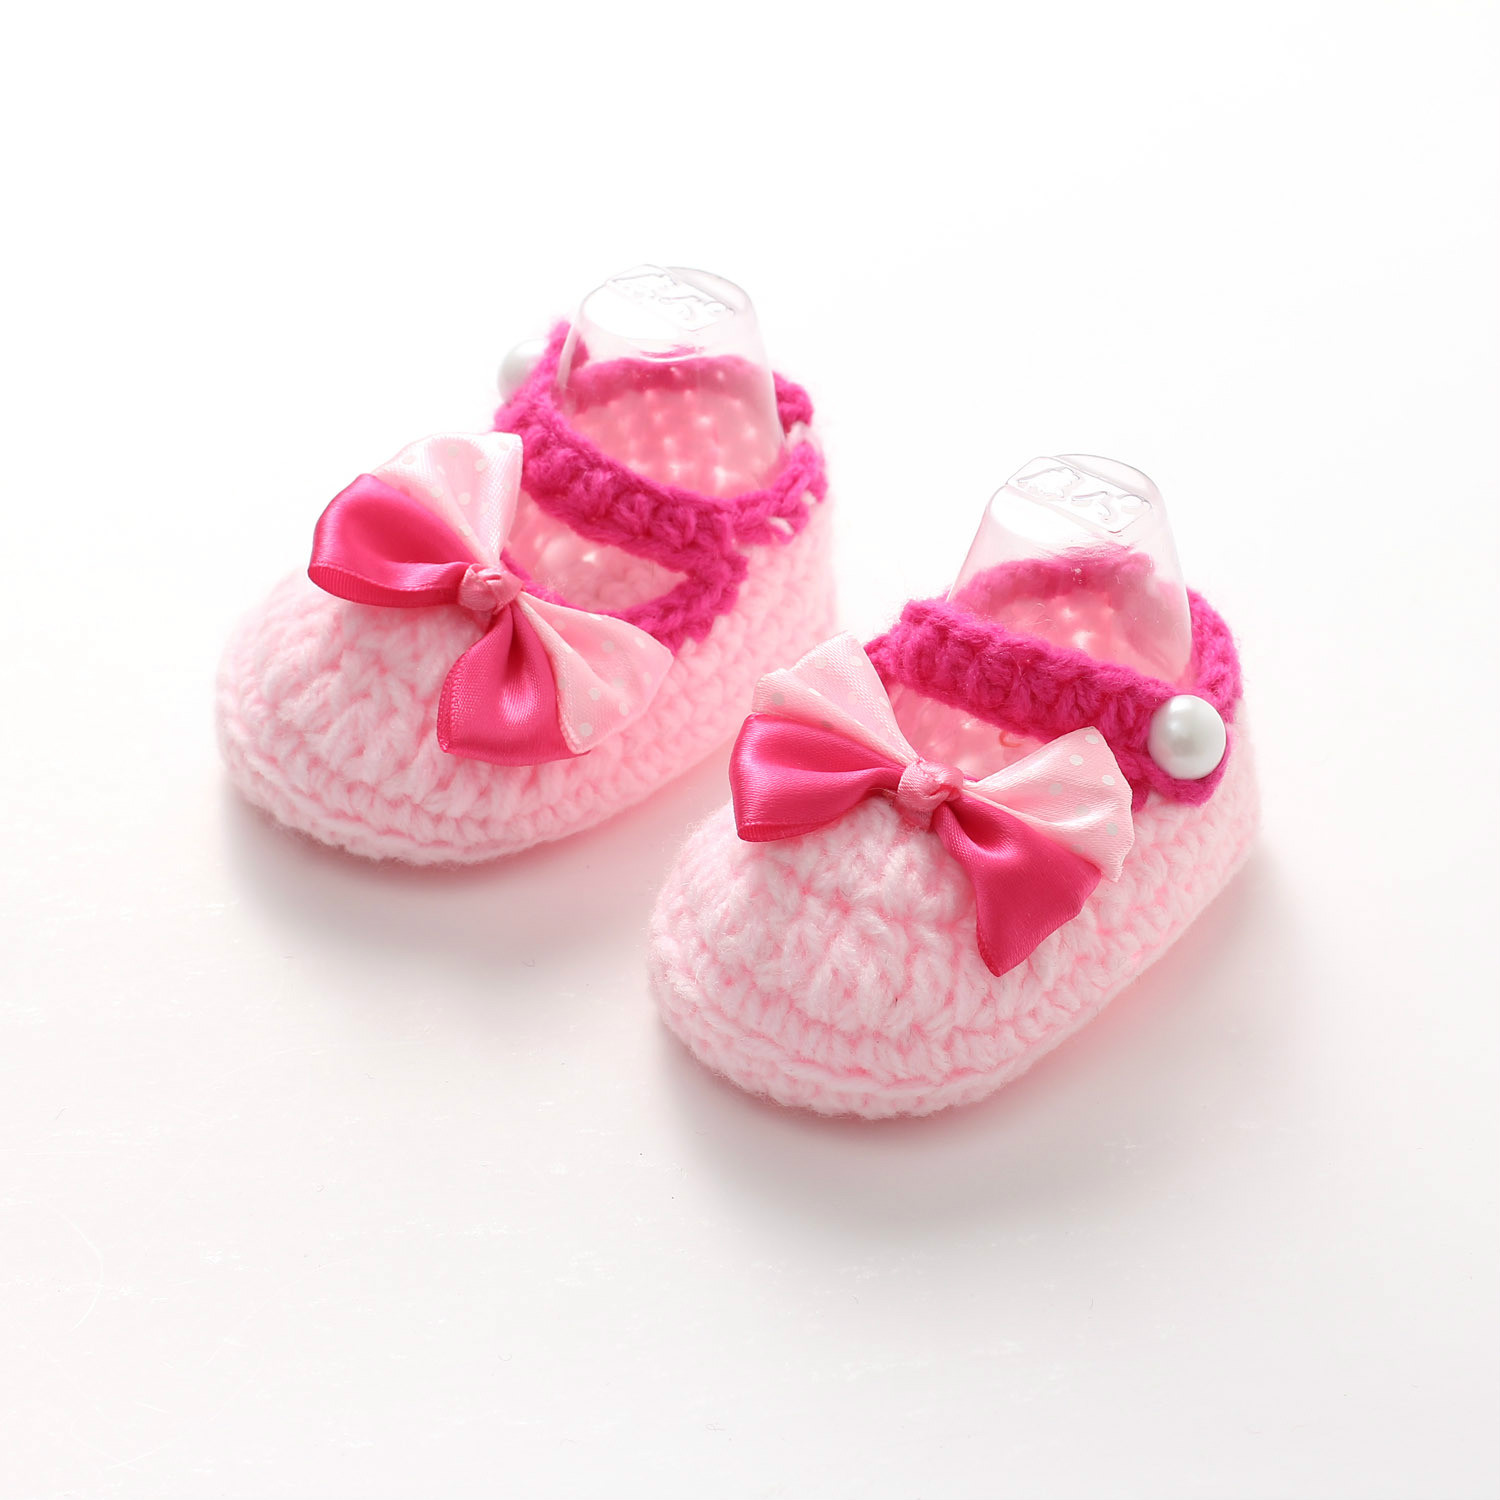 Mother & Kids Able 11cm 1pair Pure Manual Weaving Yarn Baby Soft Bottom Toddler Shoes Bowknot Is Baby Pink Xd-197 Toddler Girl Shoes First Walkers